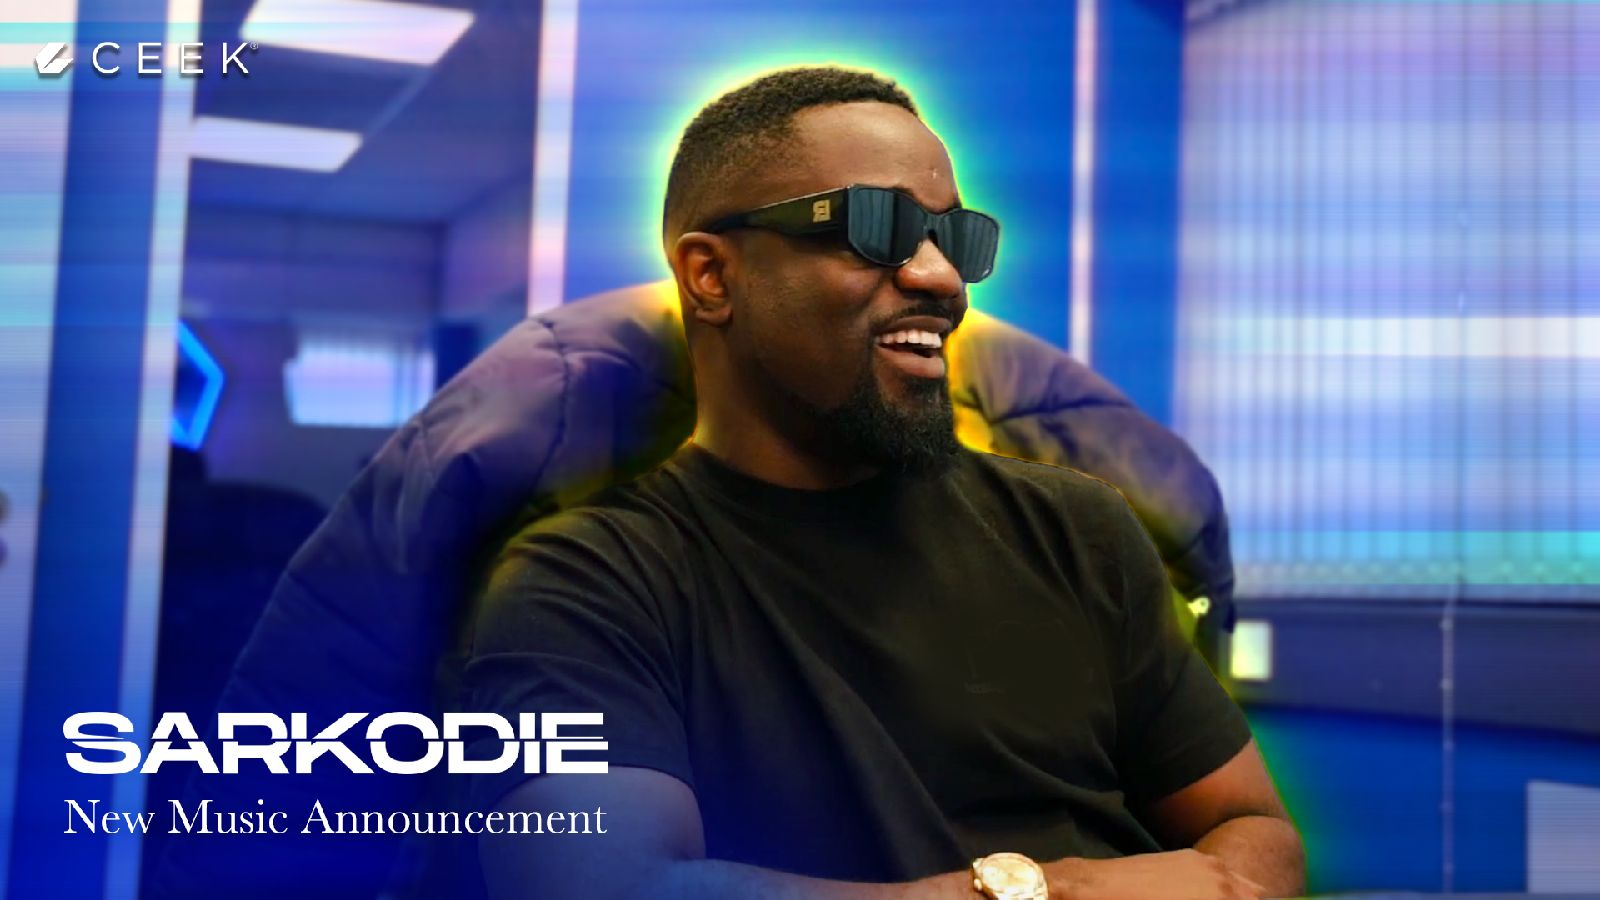 Sarkodie New Music Announcement